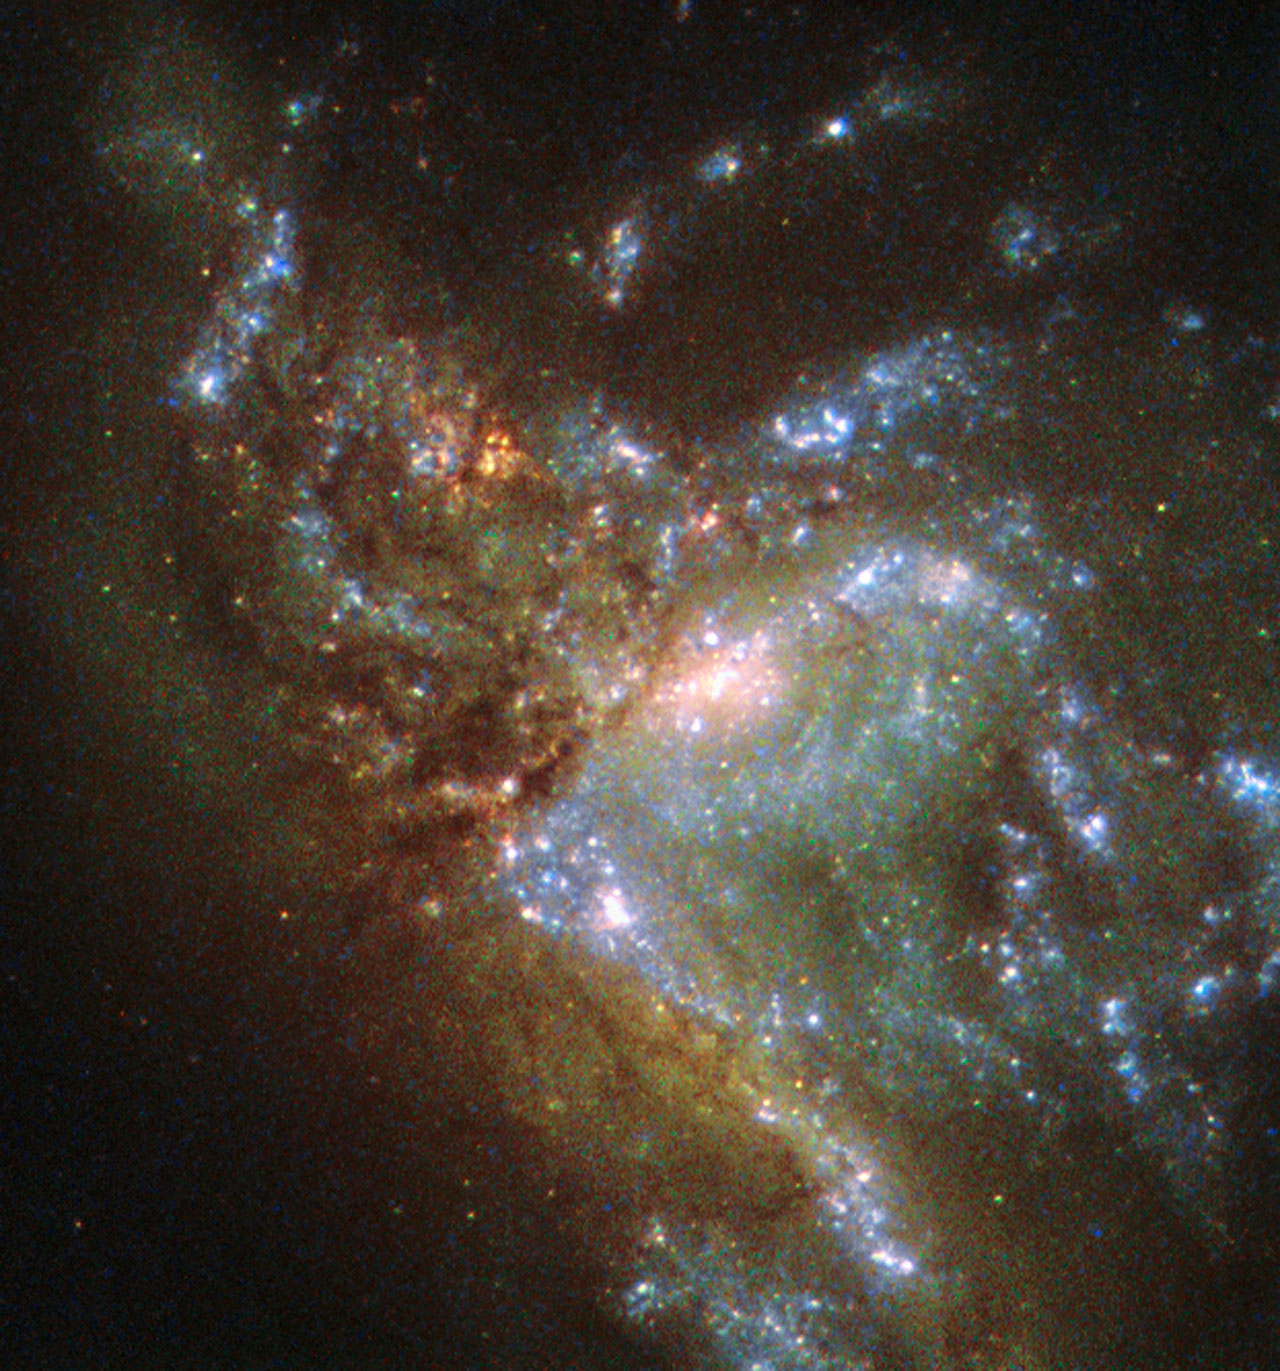 Distant Galaxy Merger Captured by Hubble Space Telescope (Photo)